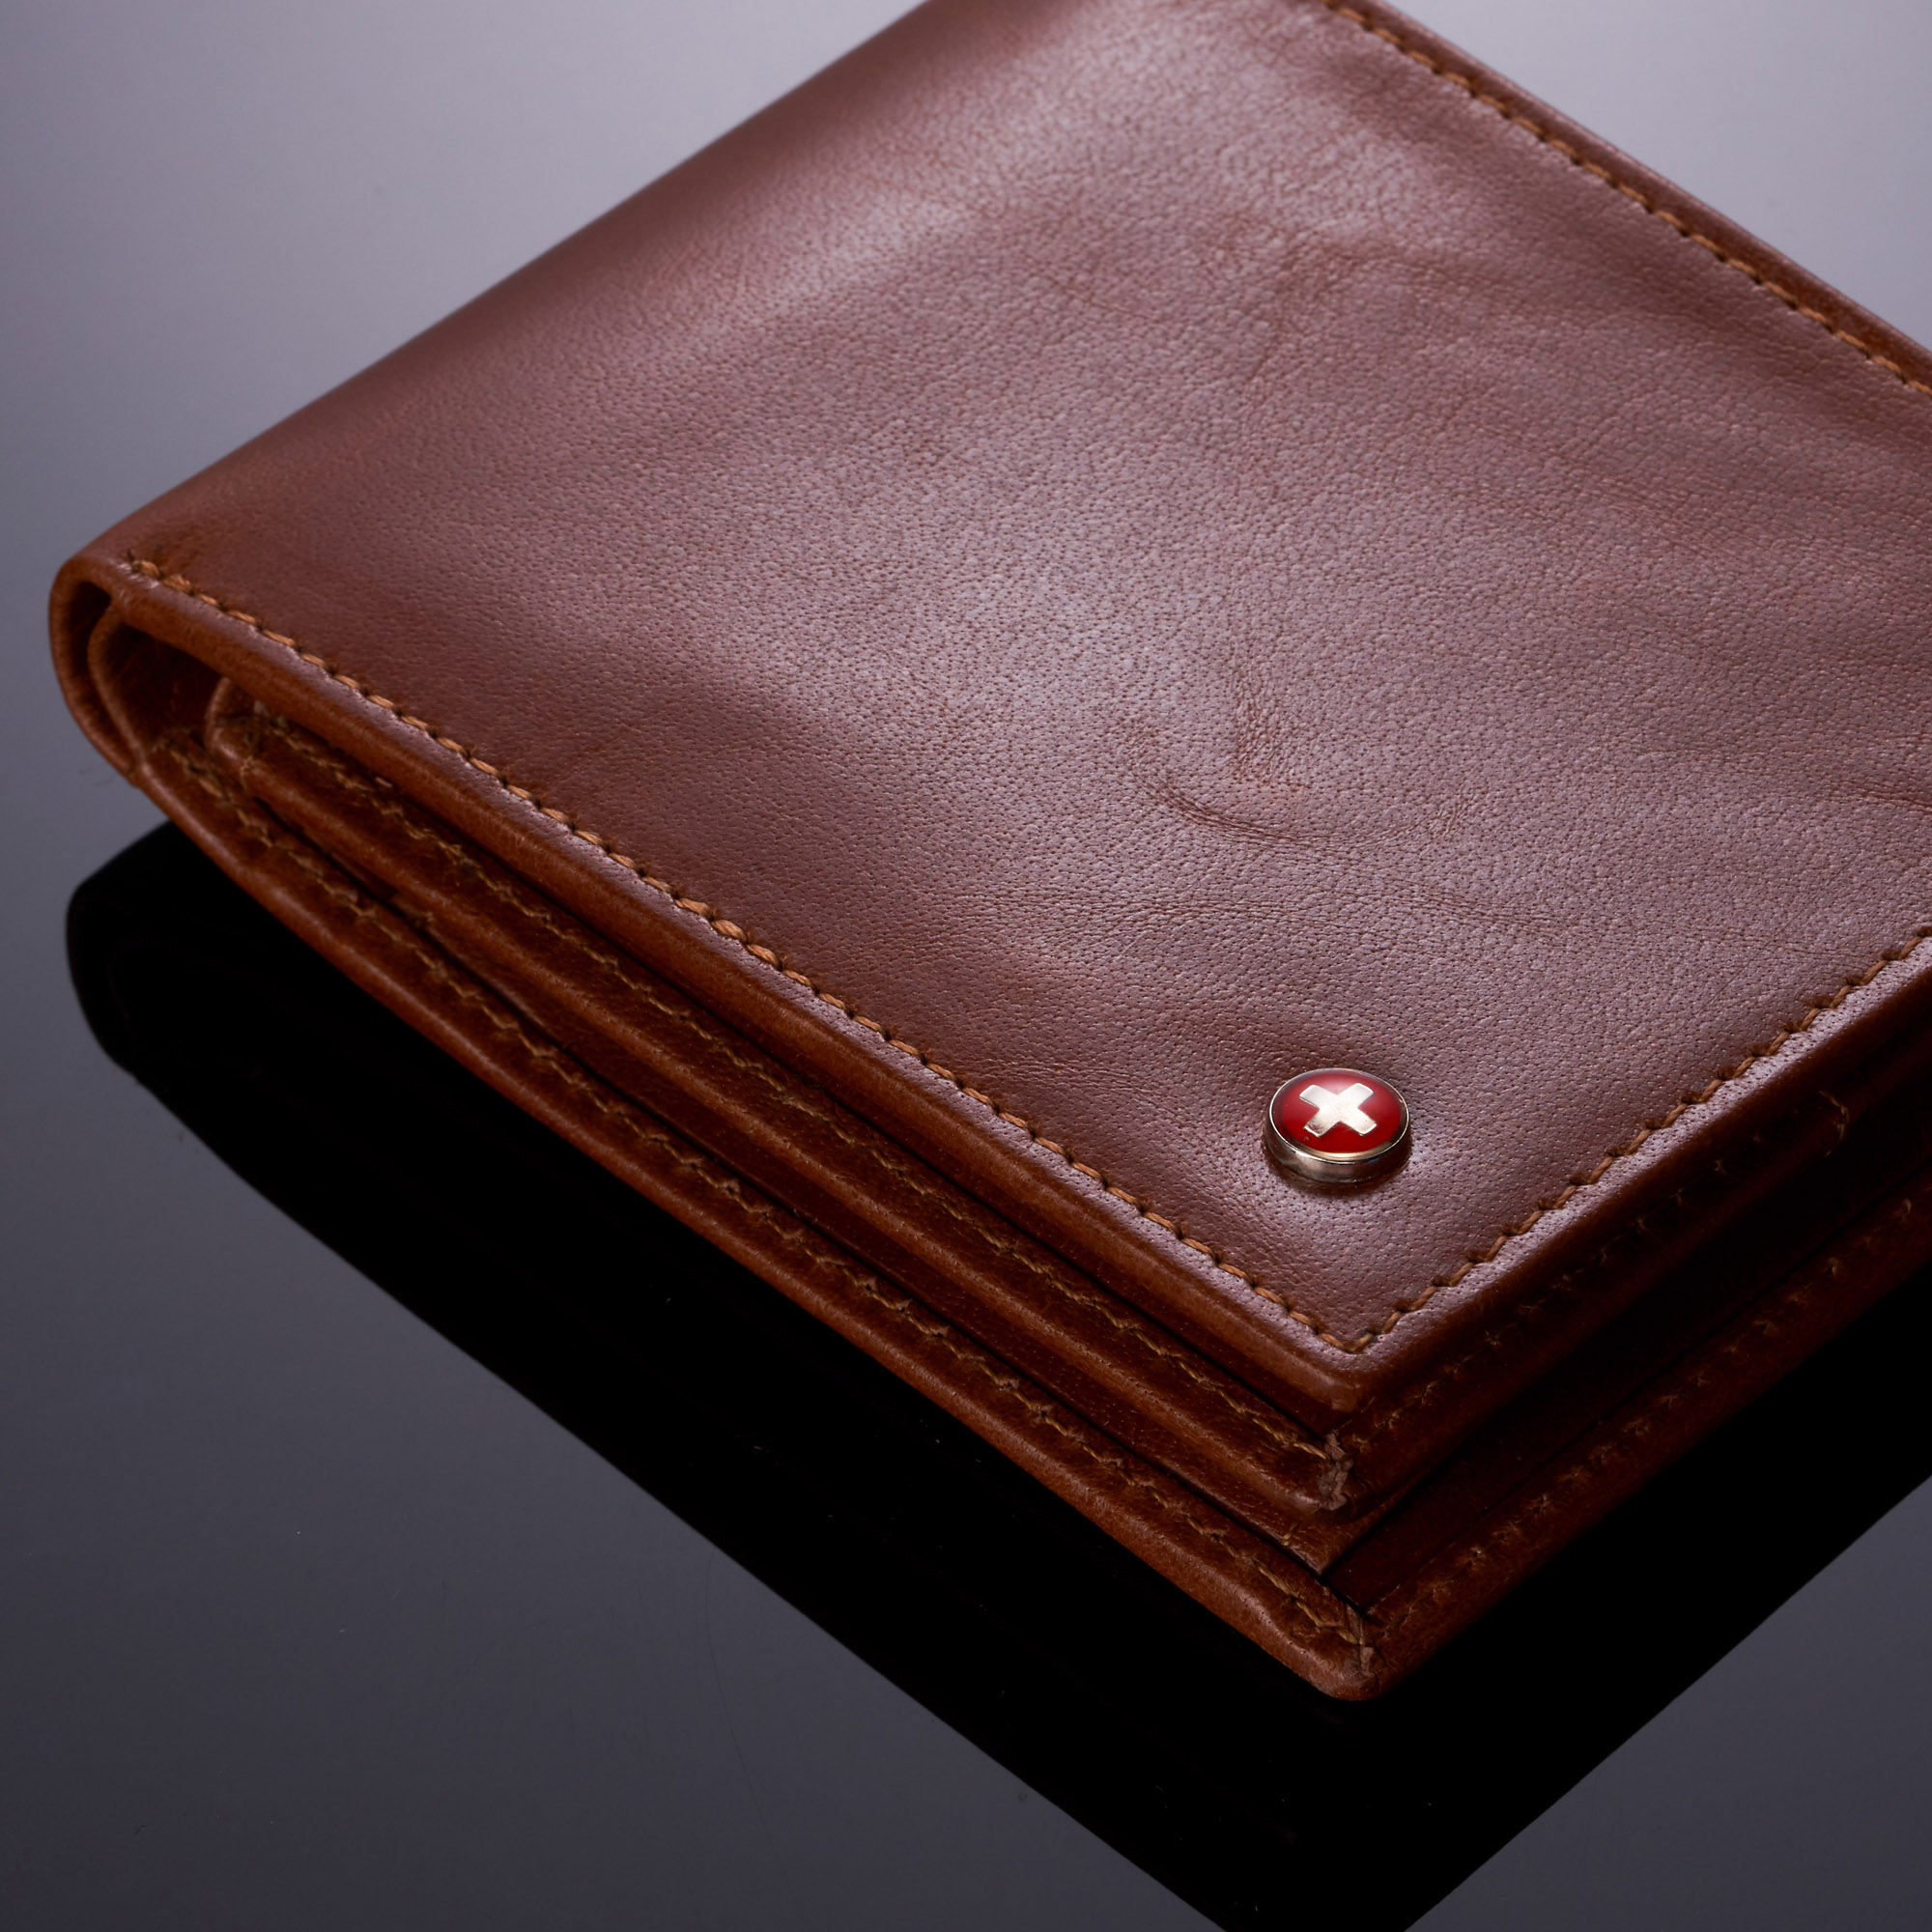 miniature 26 - Alpine-Swiss-RFID-Mens-Wallet-Deluxe-Capacity-Passcase-Bifold-Two-Bill-Sections